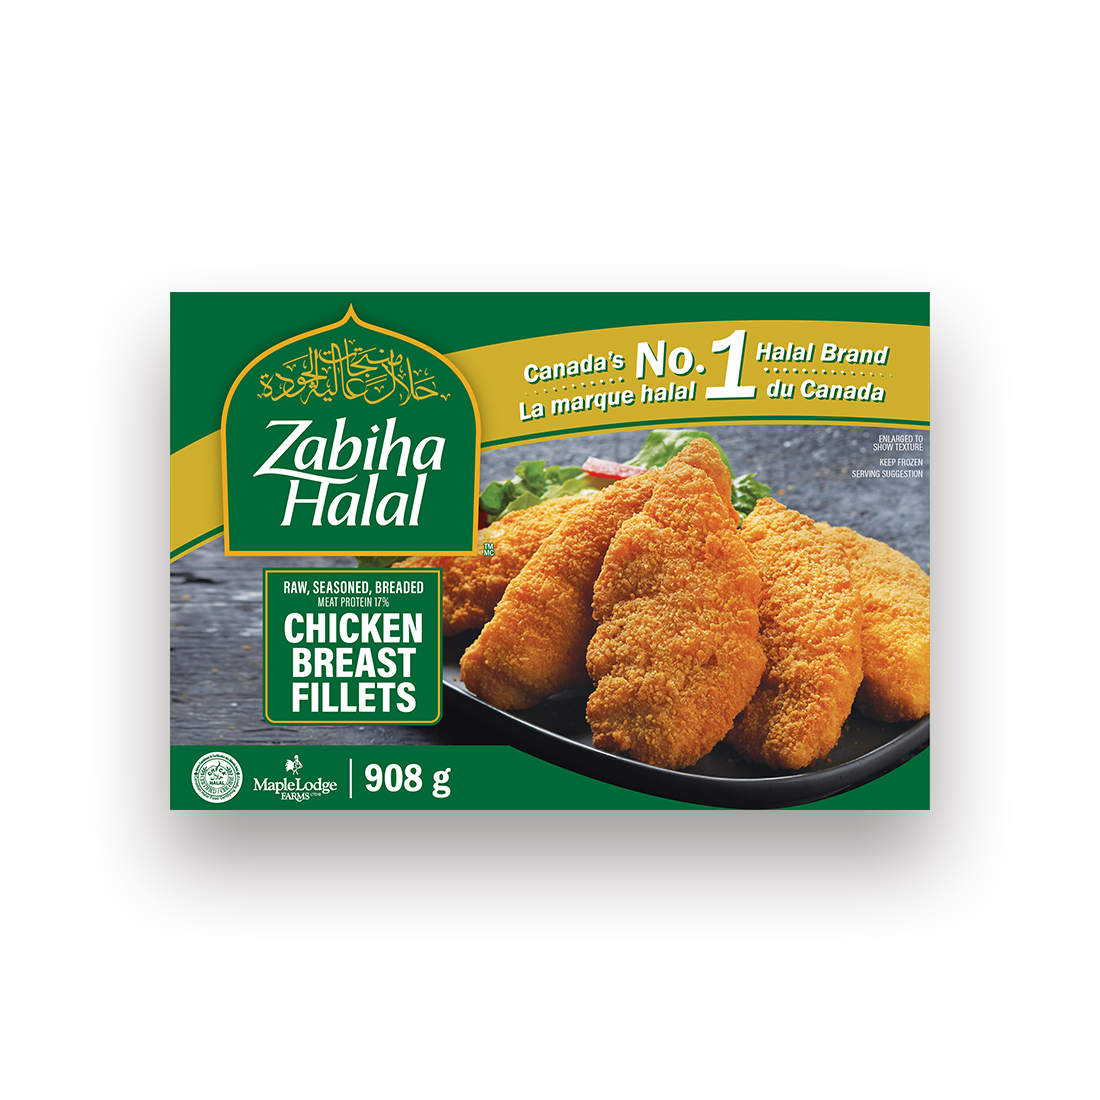 A package of frozen Chicken Breast Fillets